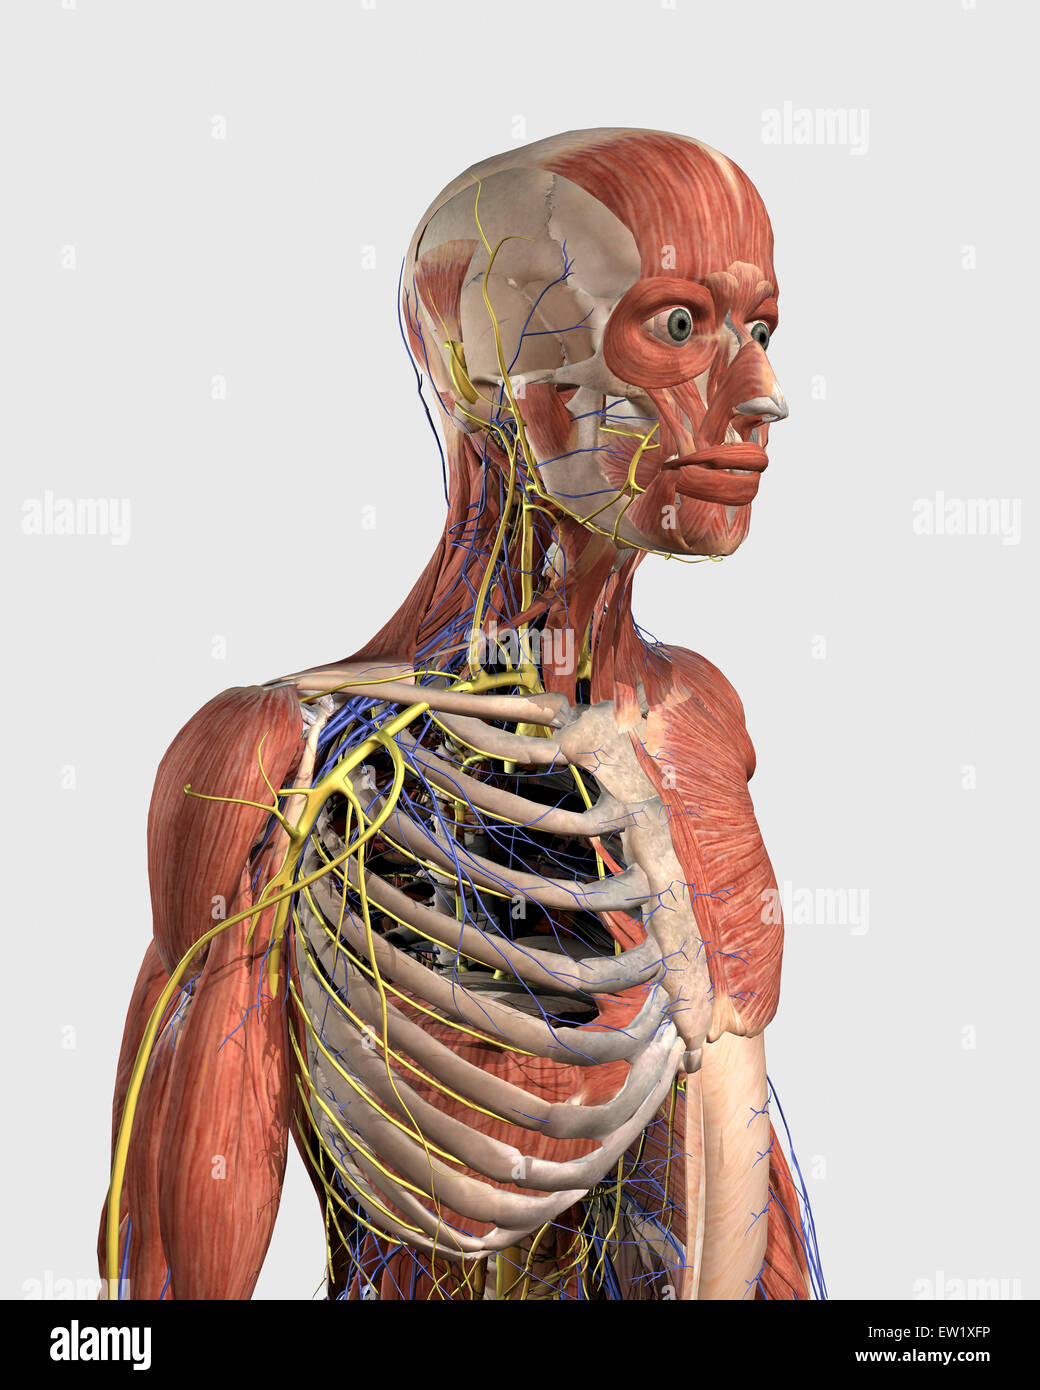 Human Upper Body Showing Muscle Parts Axial Skeleton